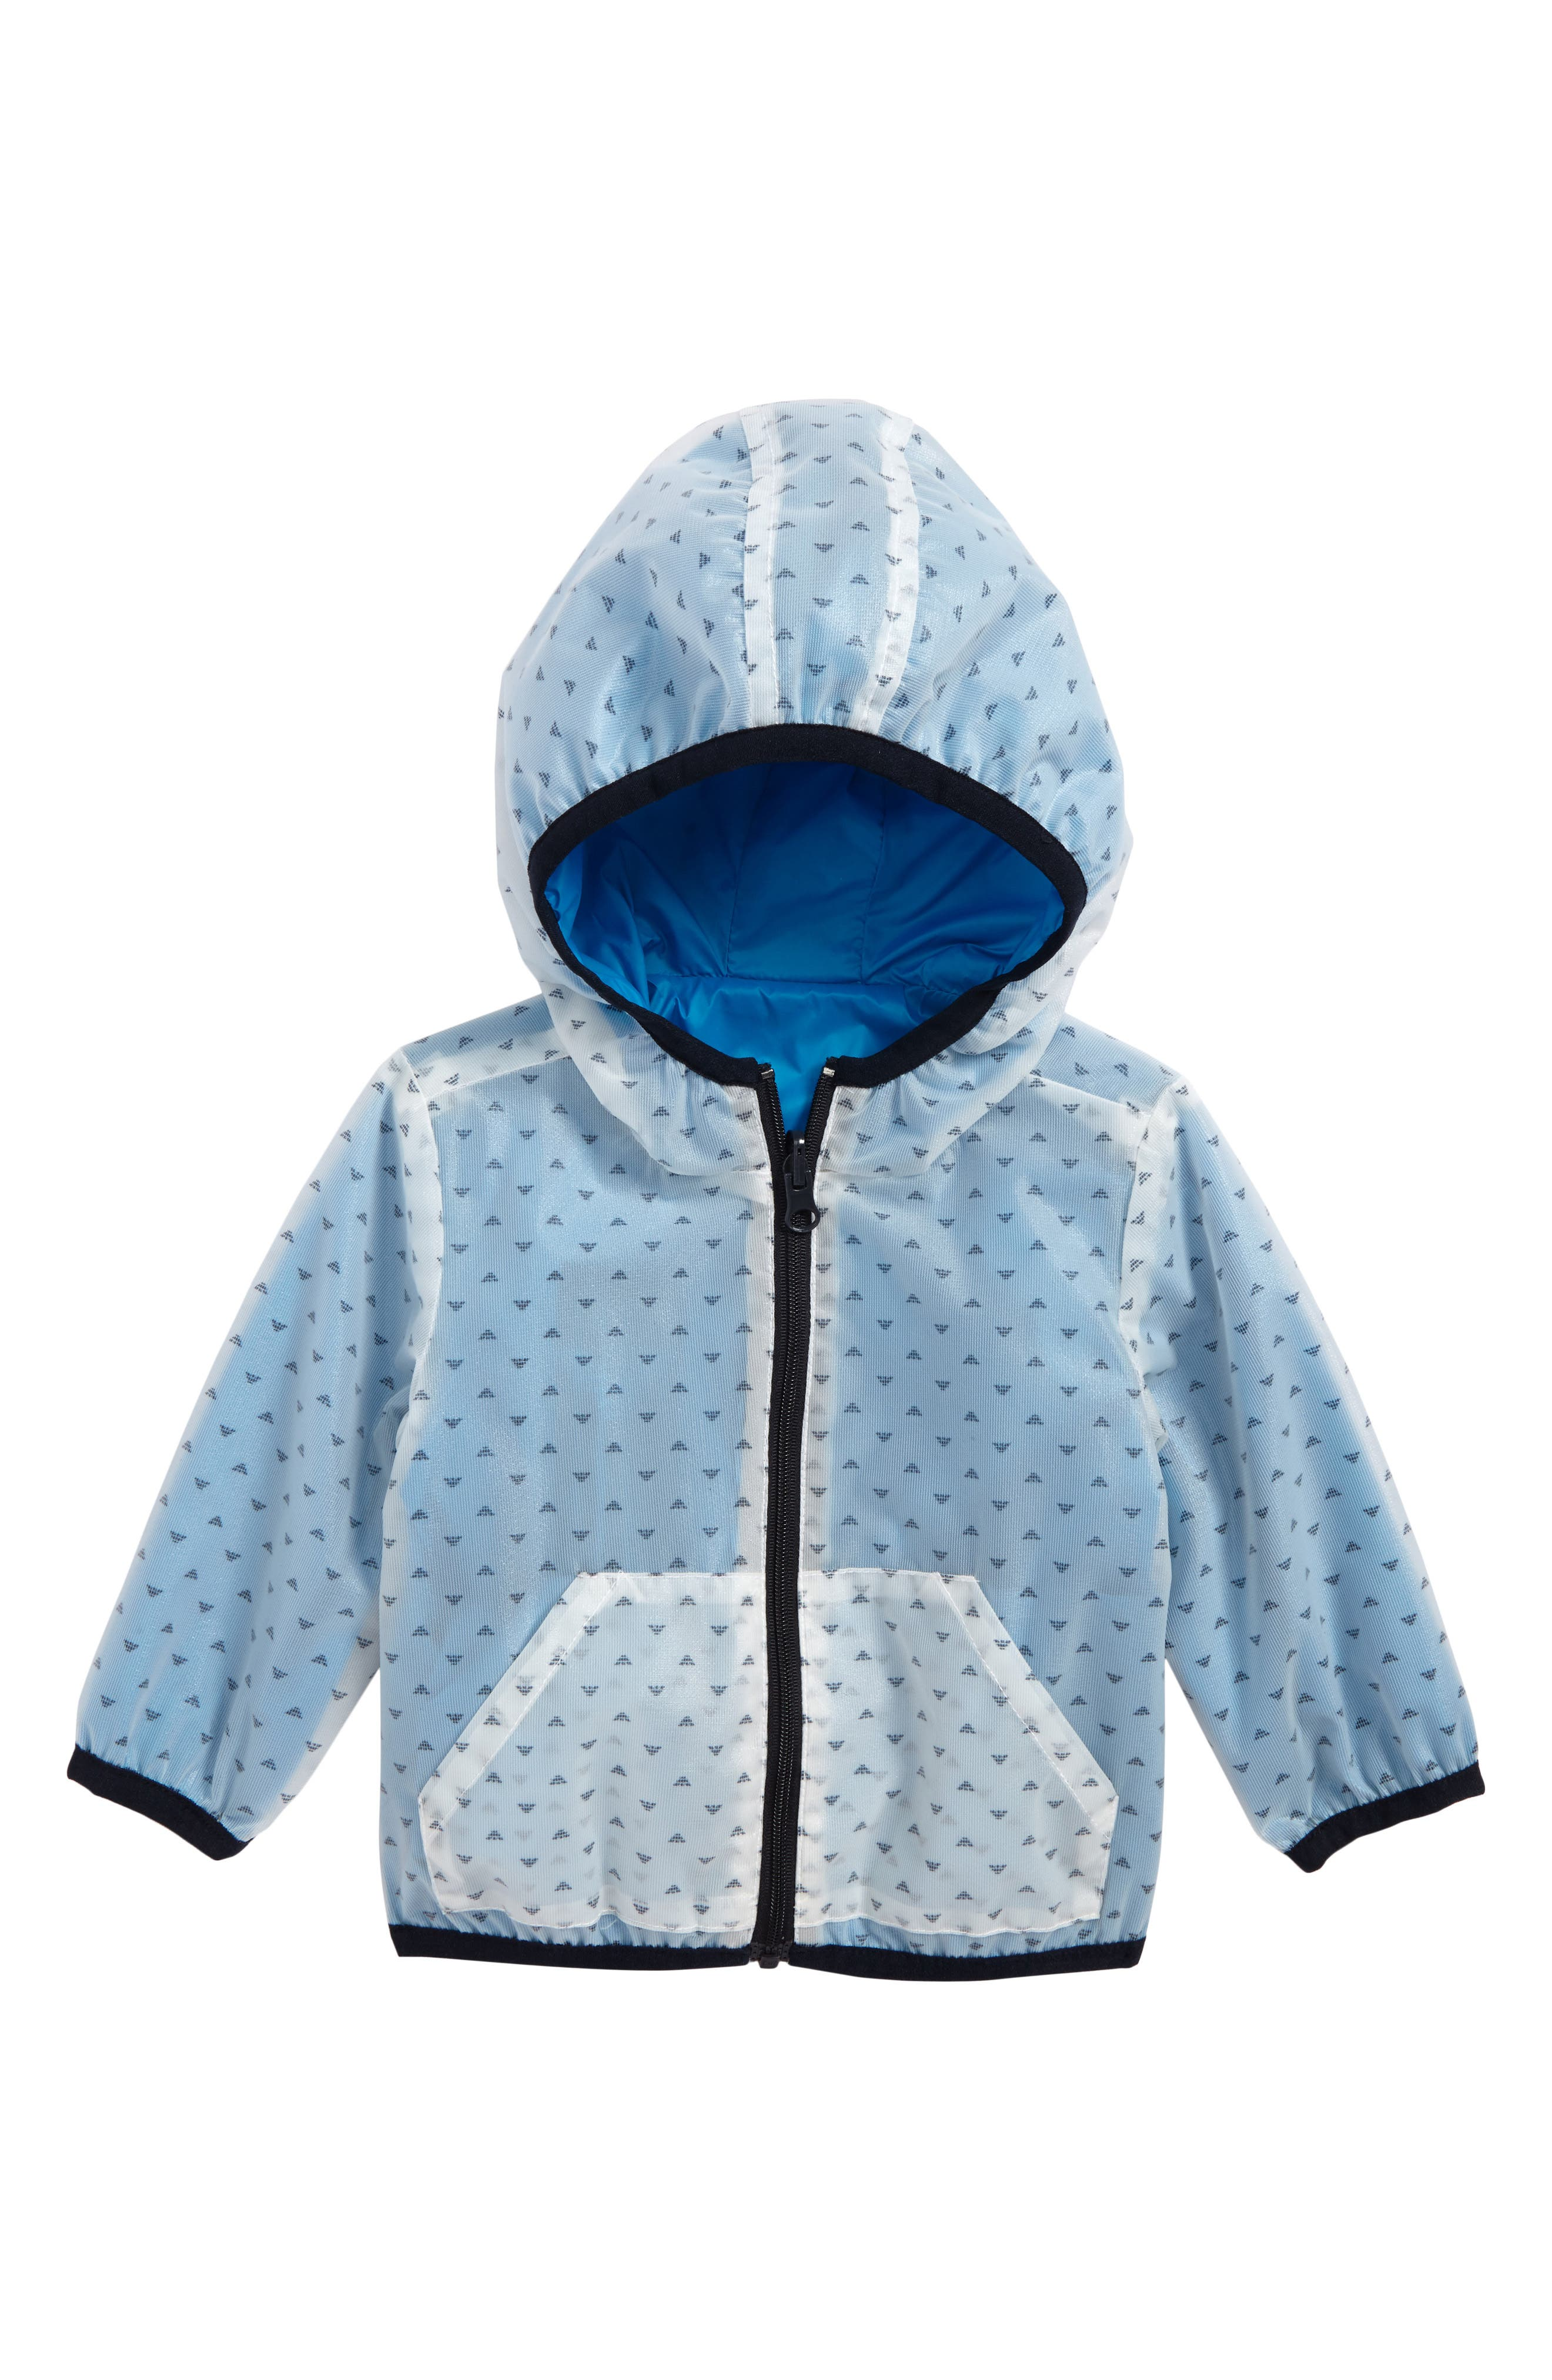 Logo Hooded Jacket,                         Main,                         color, Turquoise